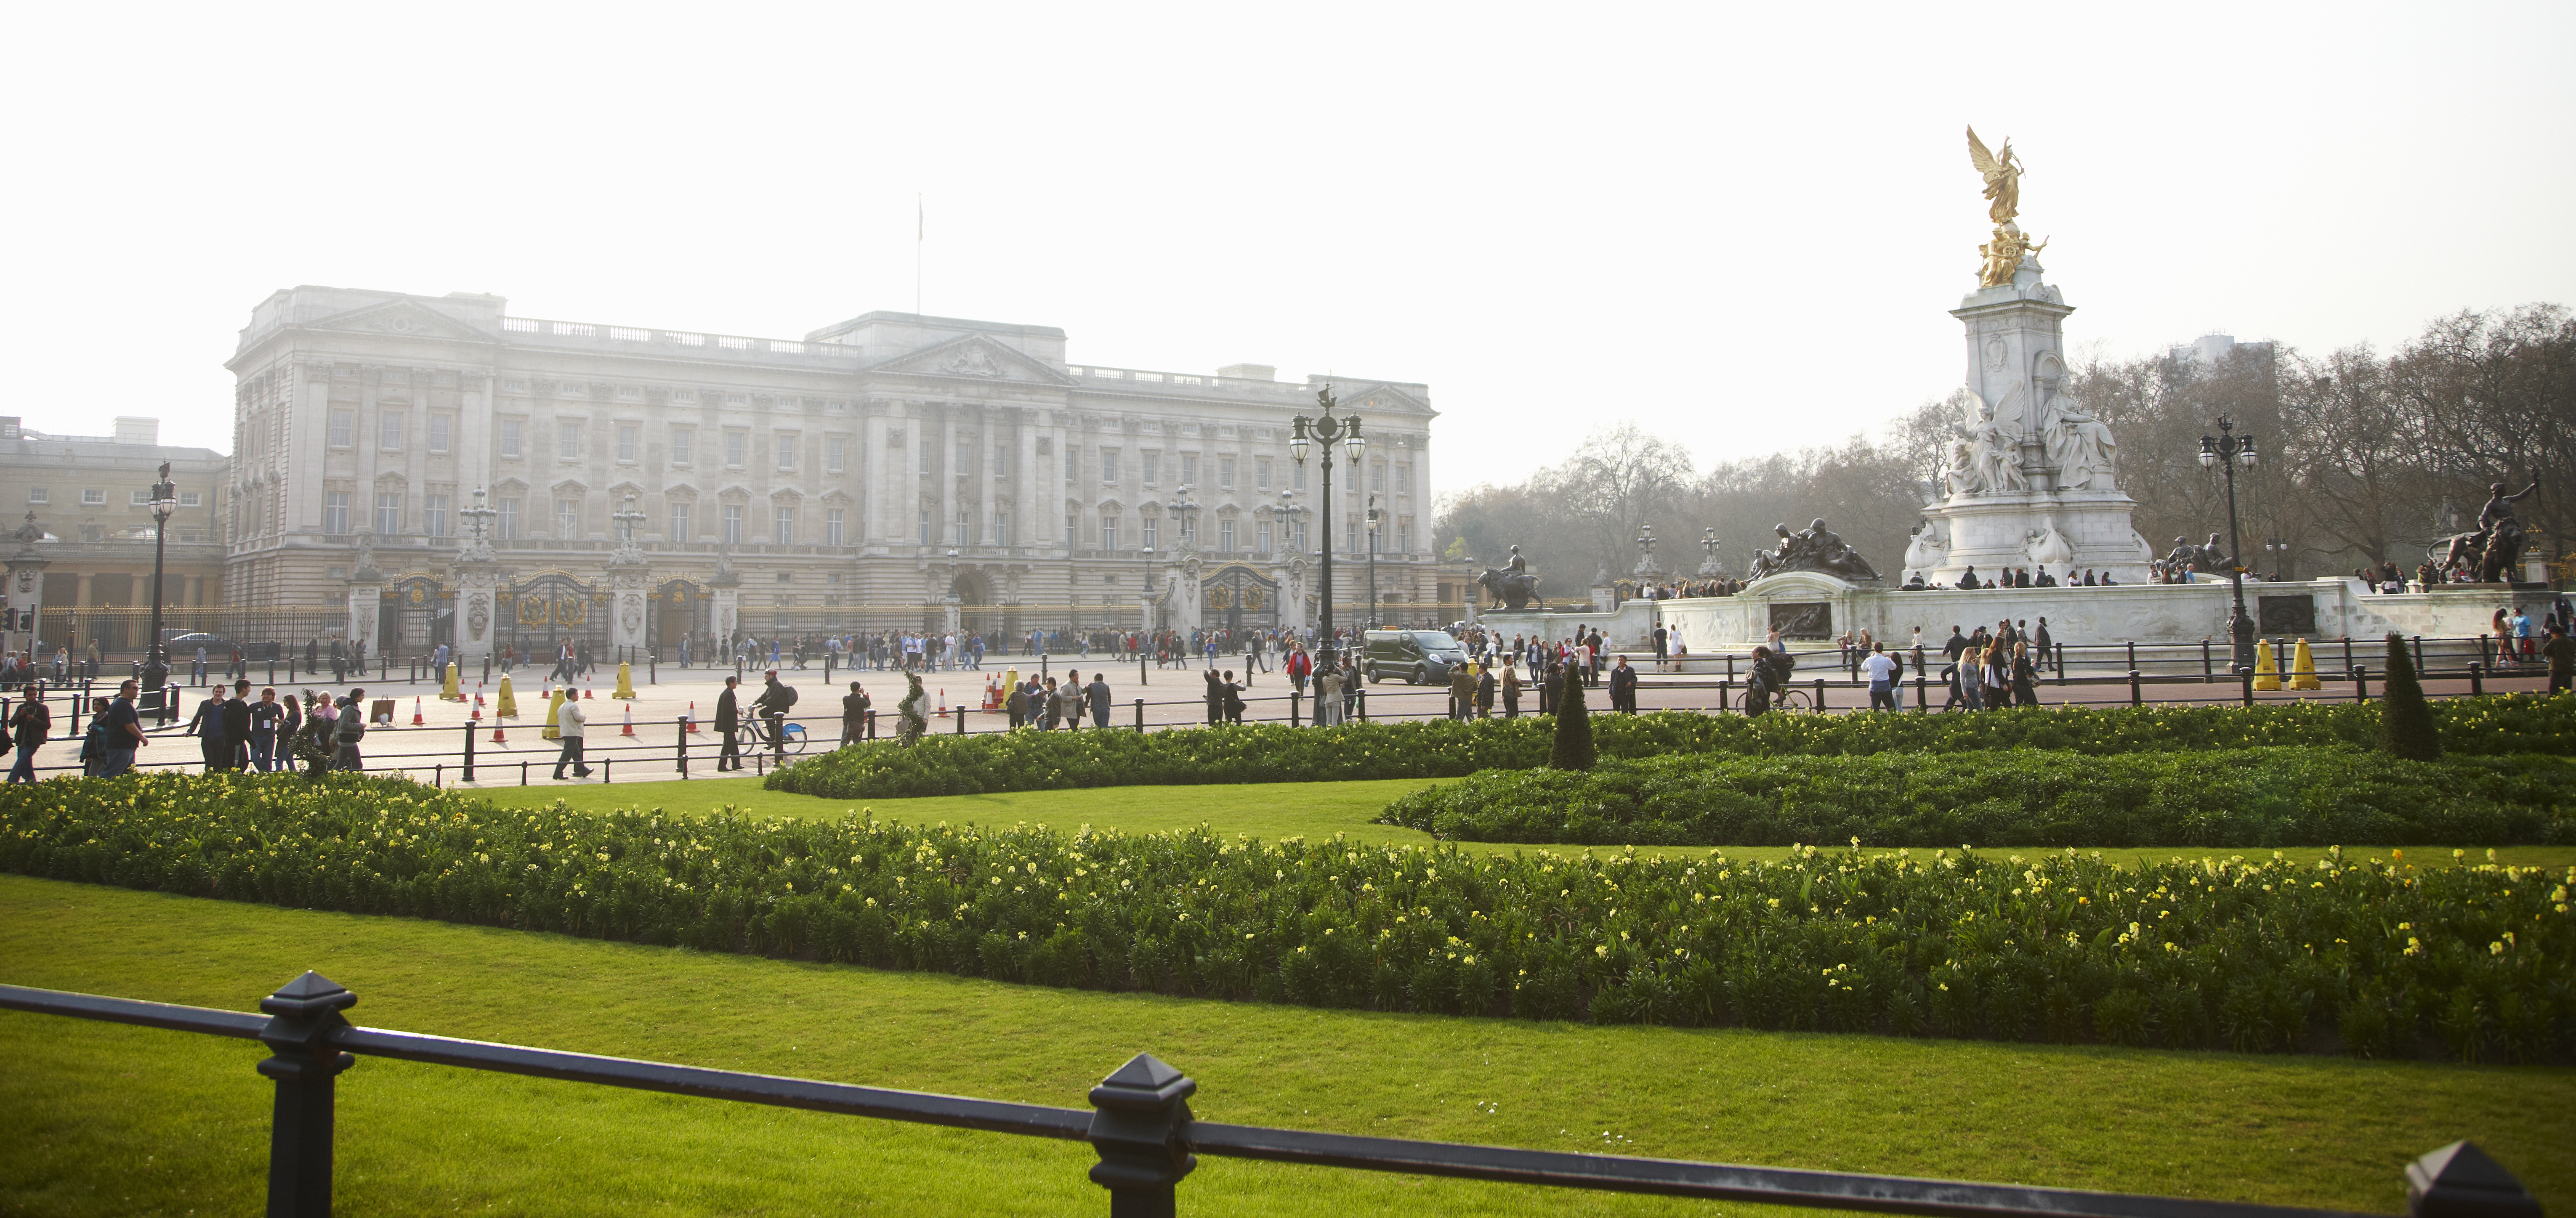 Buckingham Palace in the Mall. The royal residence of the Queen. Queen Victoria memorial at the centre of the traffic flow. Taxis and cars. Bicycles.